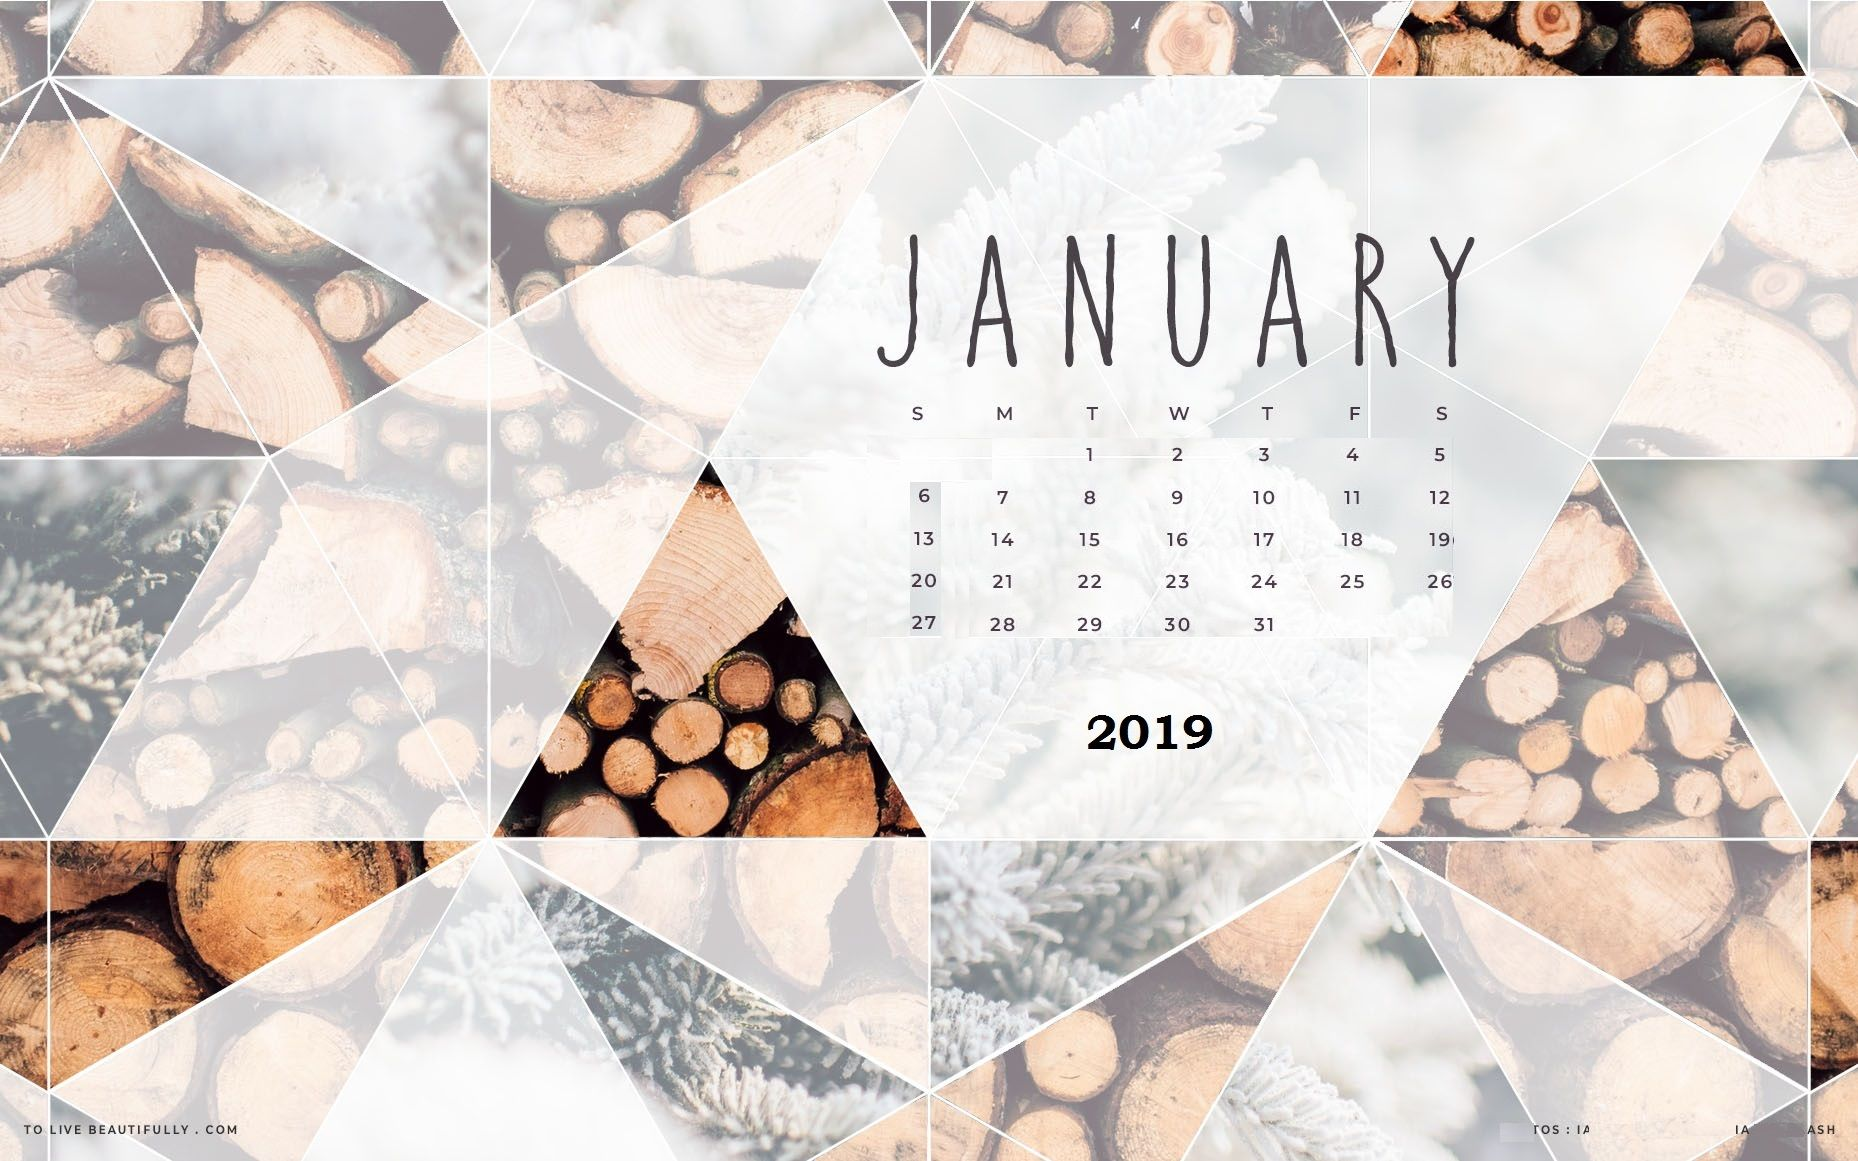 Cute January 2019 Calendar Background Wallpaper Cute January 2019 Calendar Wall Floral Flower Designs